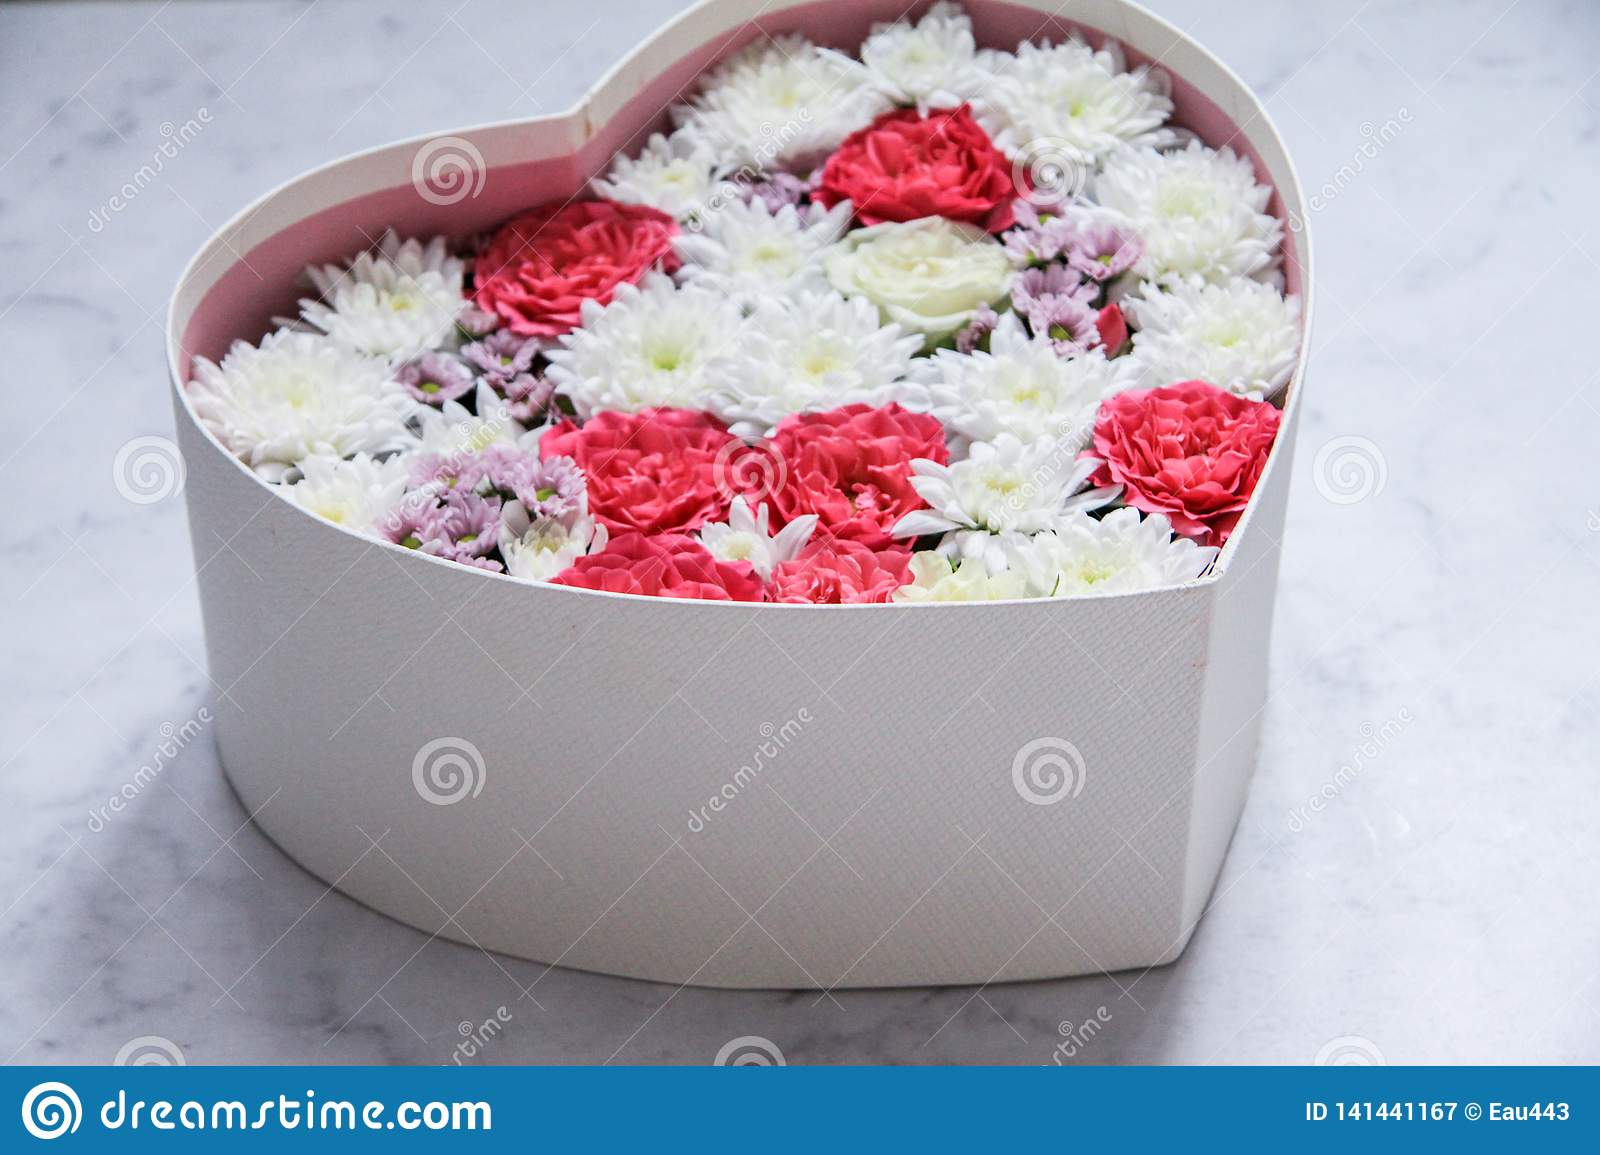 Gift box with heart shaped flowers on grey marble background